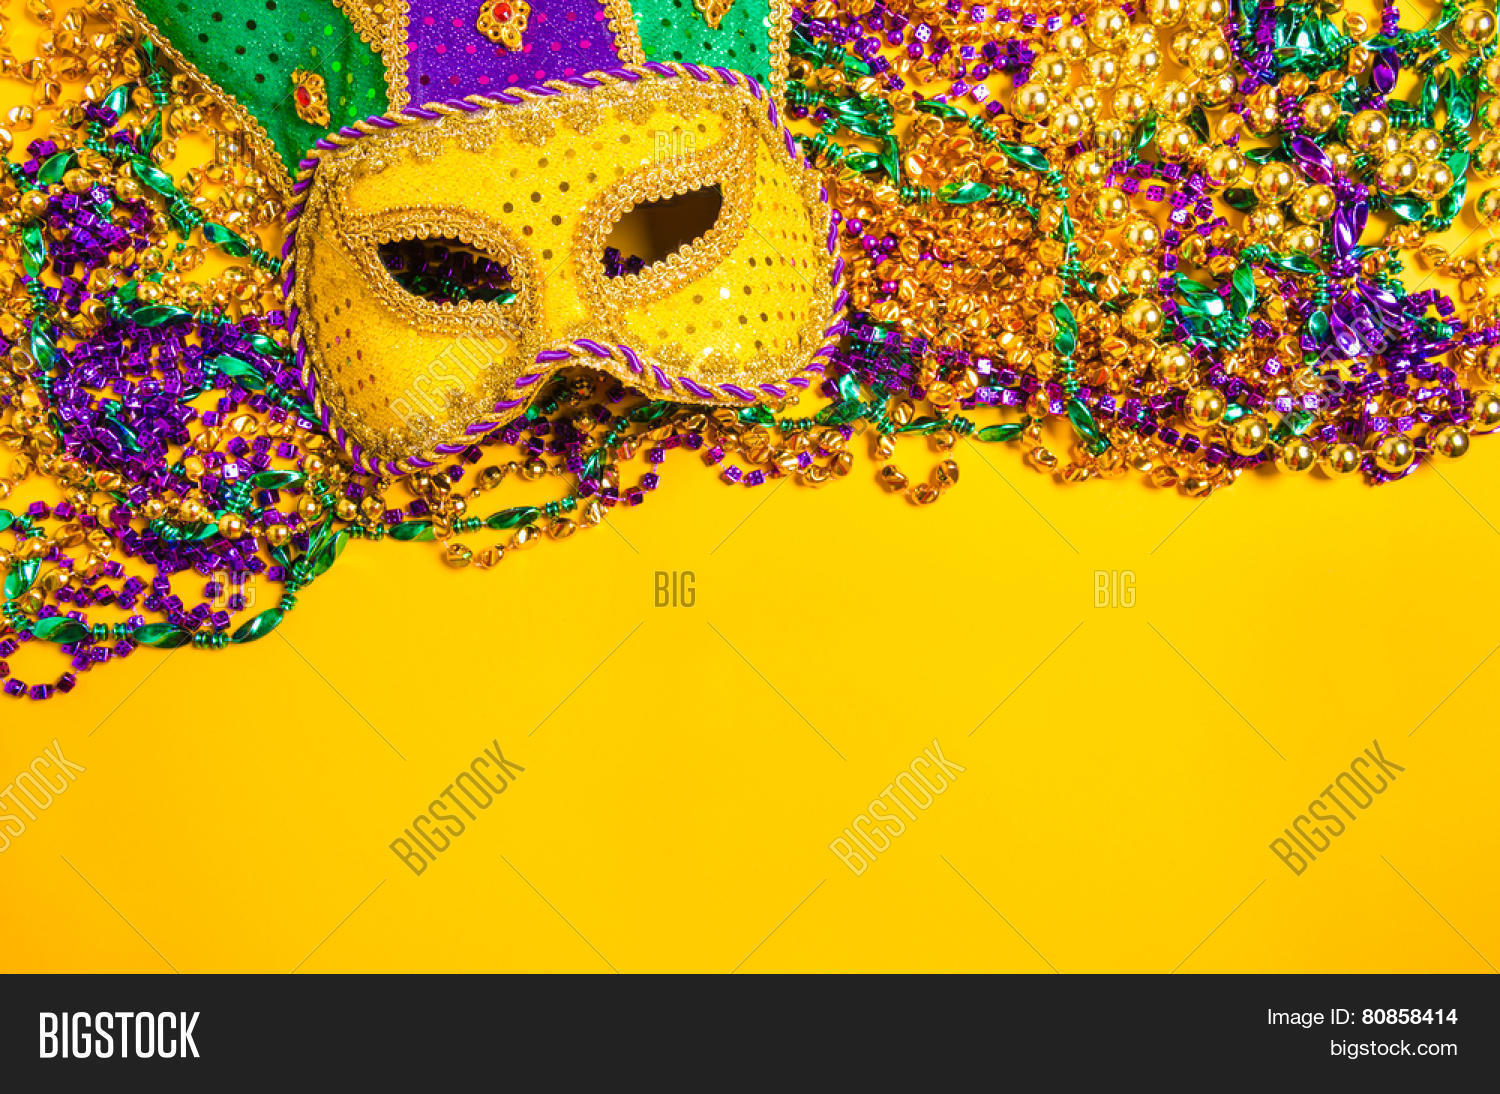 assorted colorful mardi gras mask image & photo | bigstock, Powerpoint templates